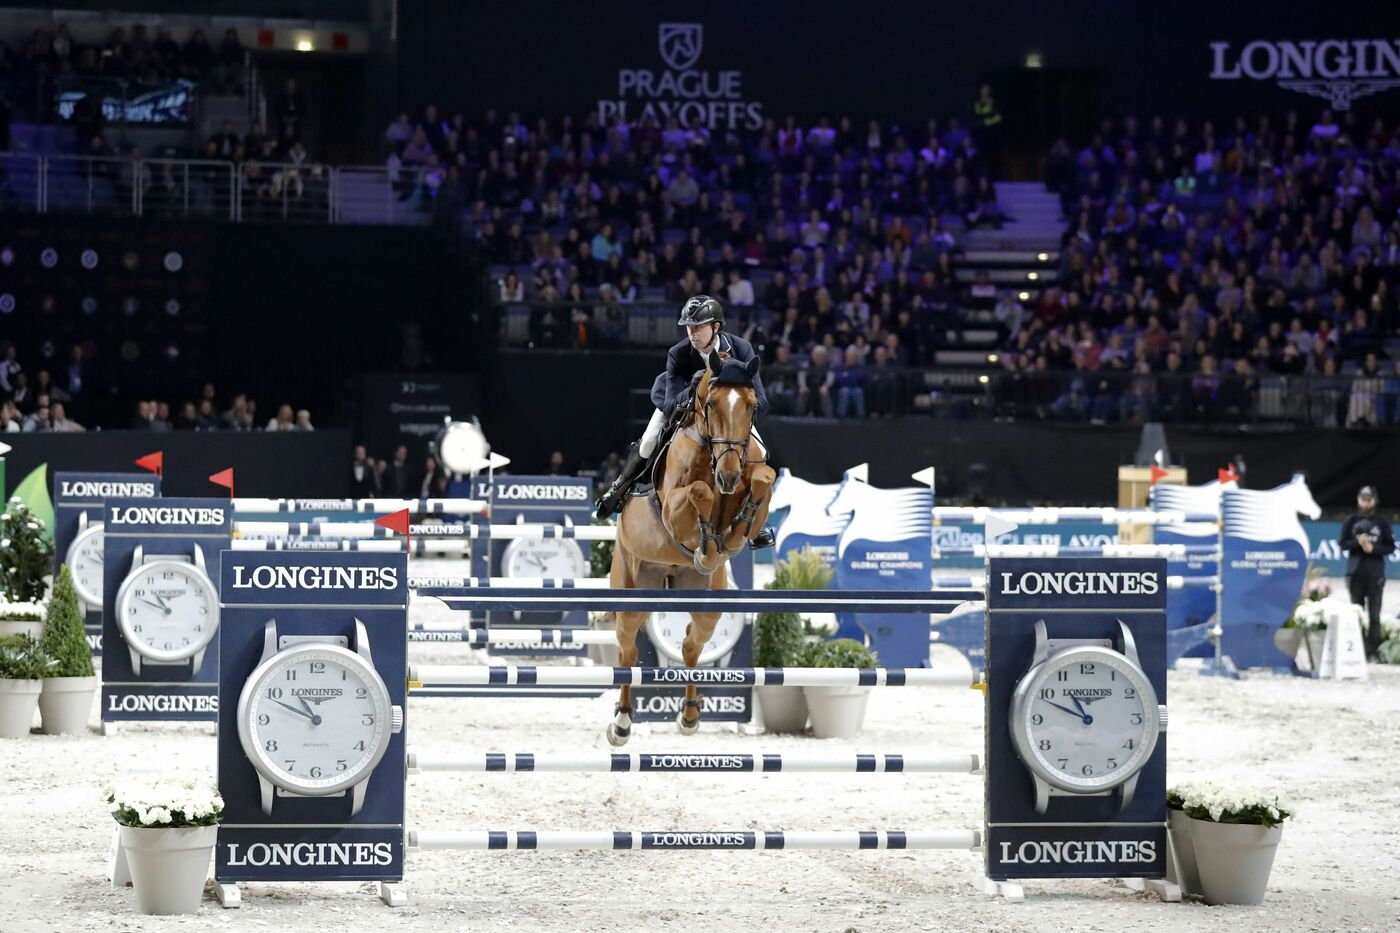 Longines Show Jumping Event: Mind-blowing victory of Ben Maher who becomes the champion of the Longines Global Champions Tour Super Grand Prix 4